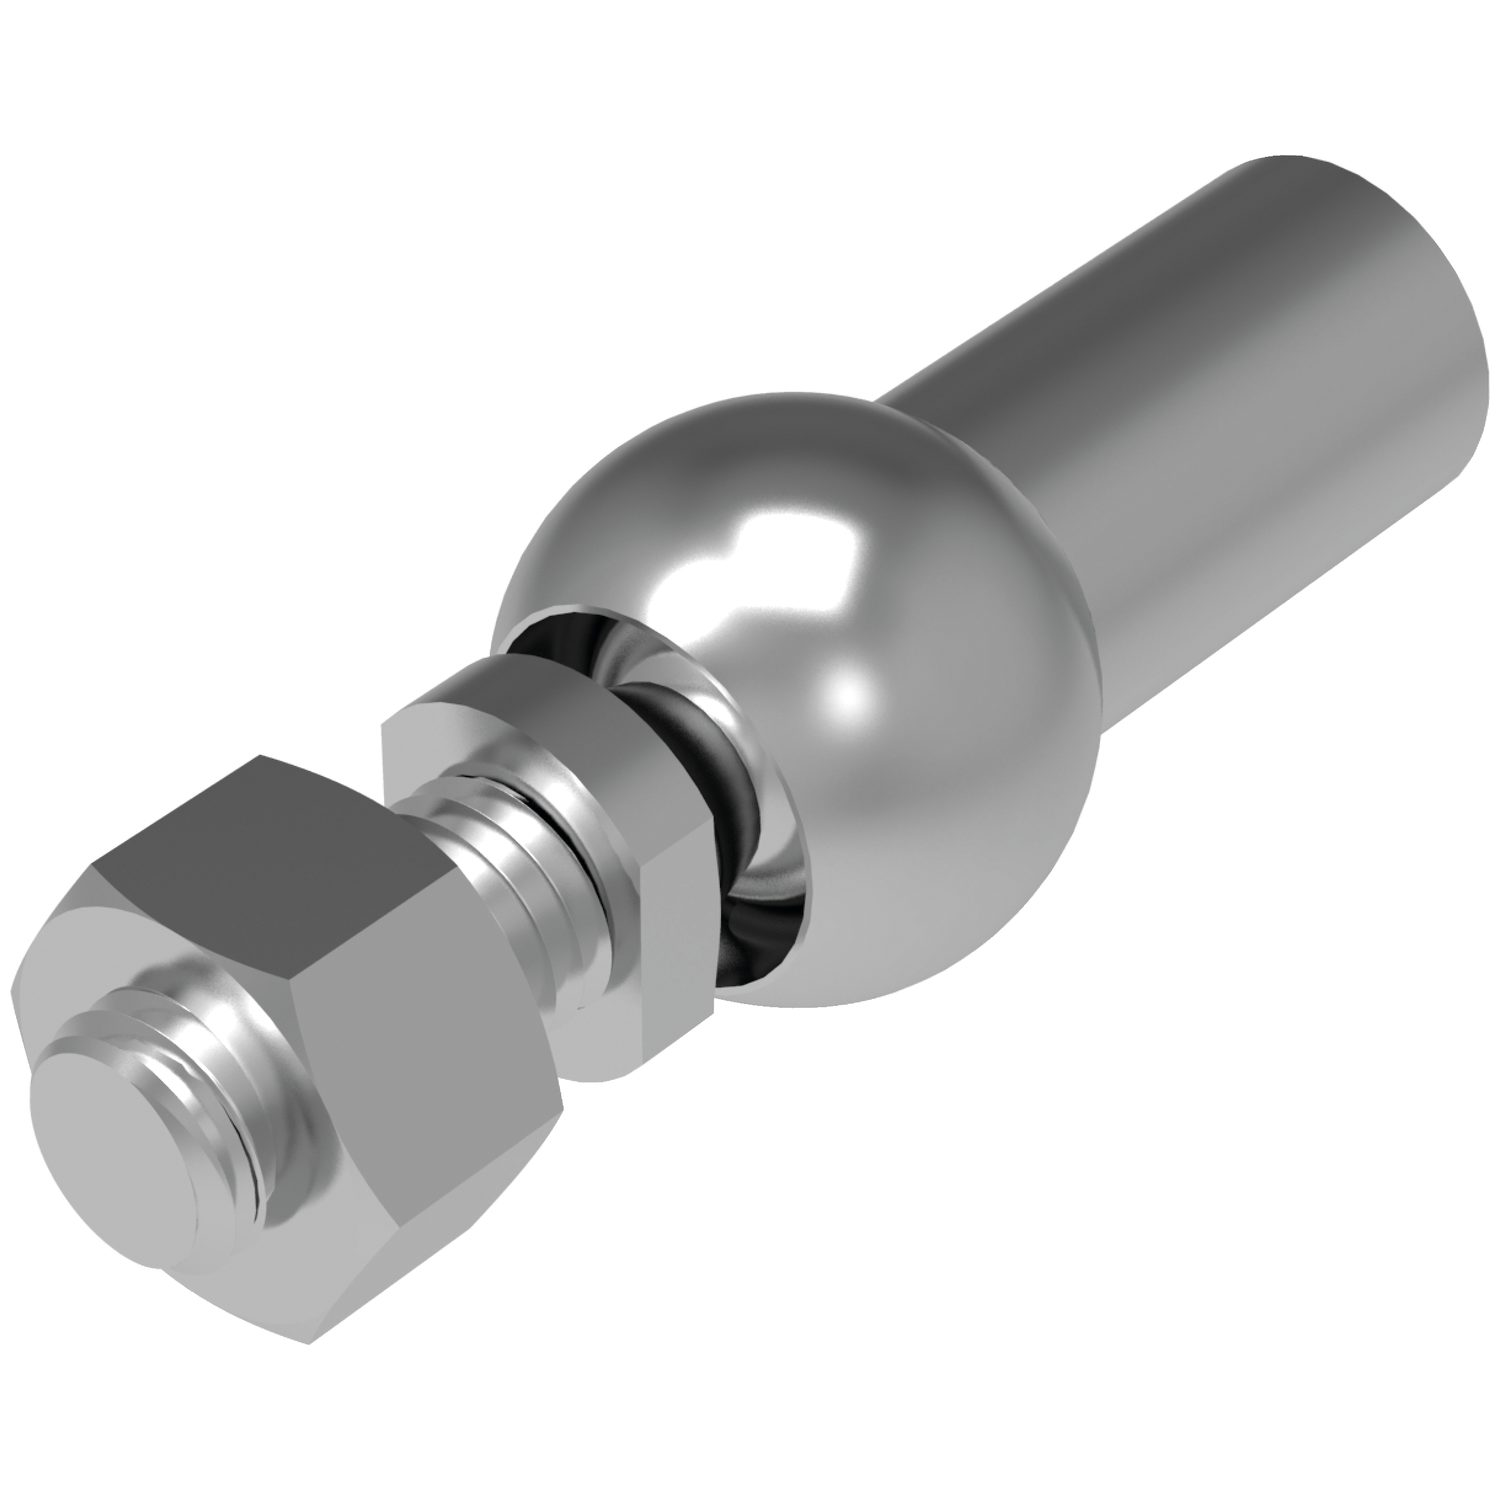 R3506 - Stainless Axial Ball and Socket Joints